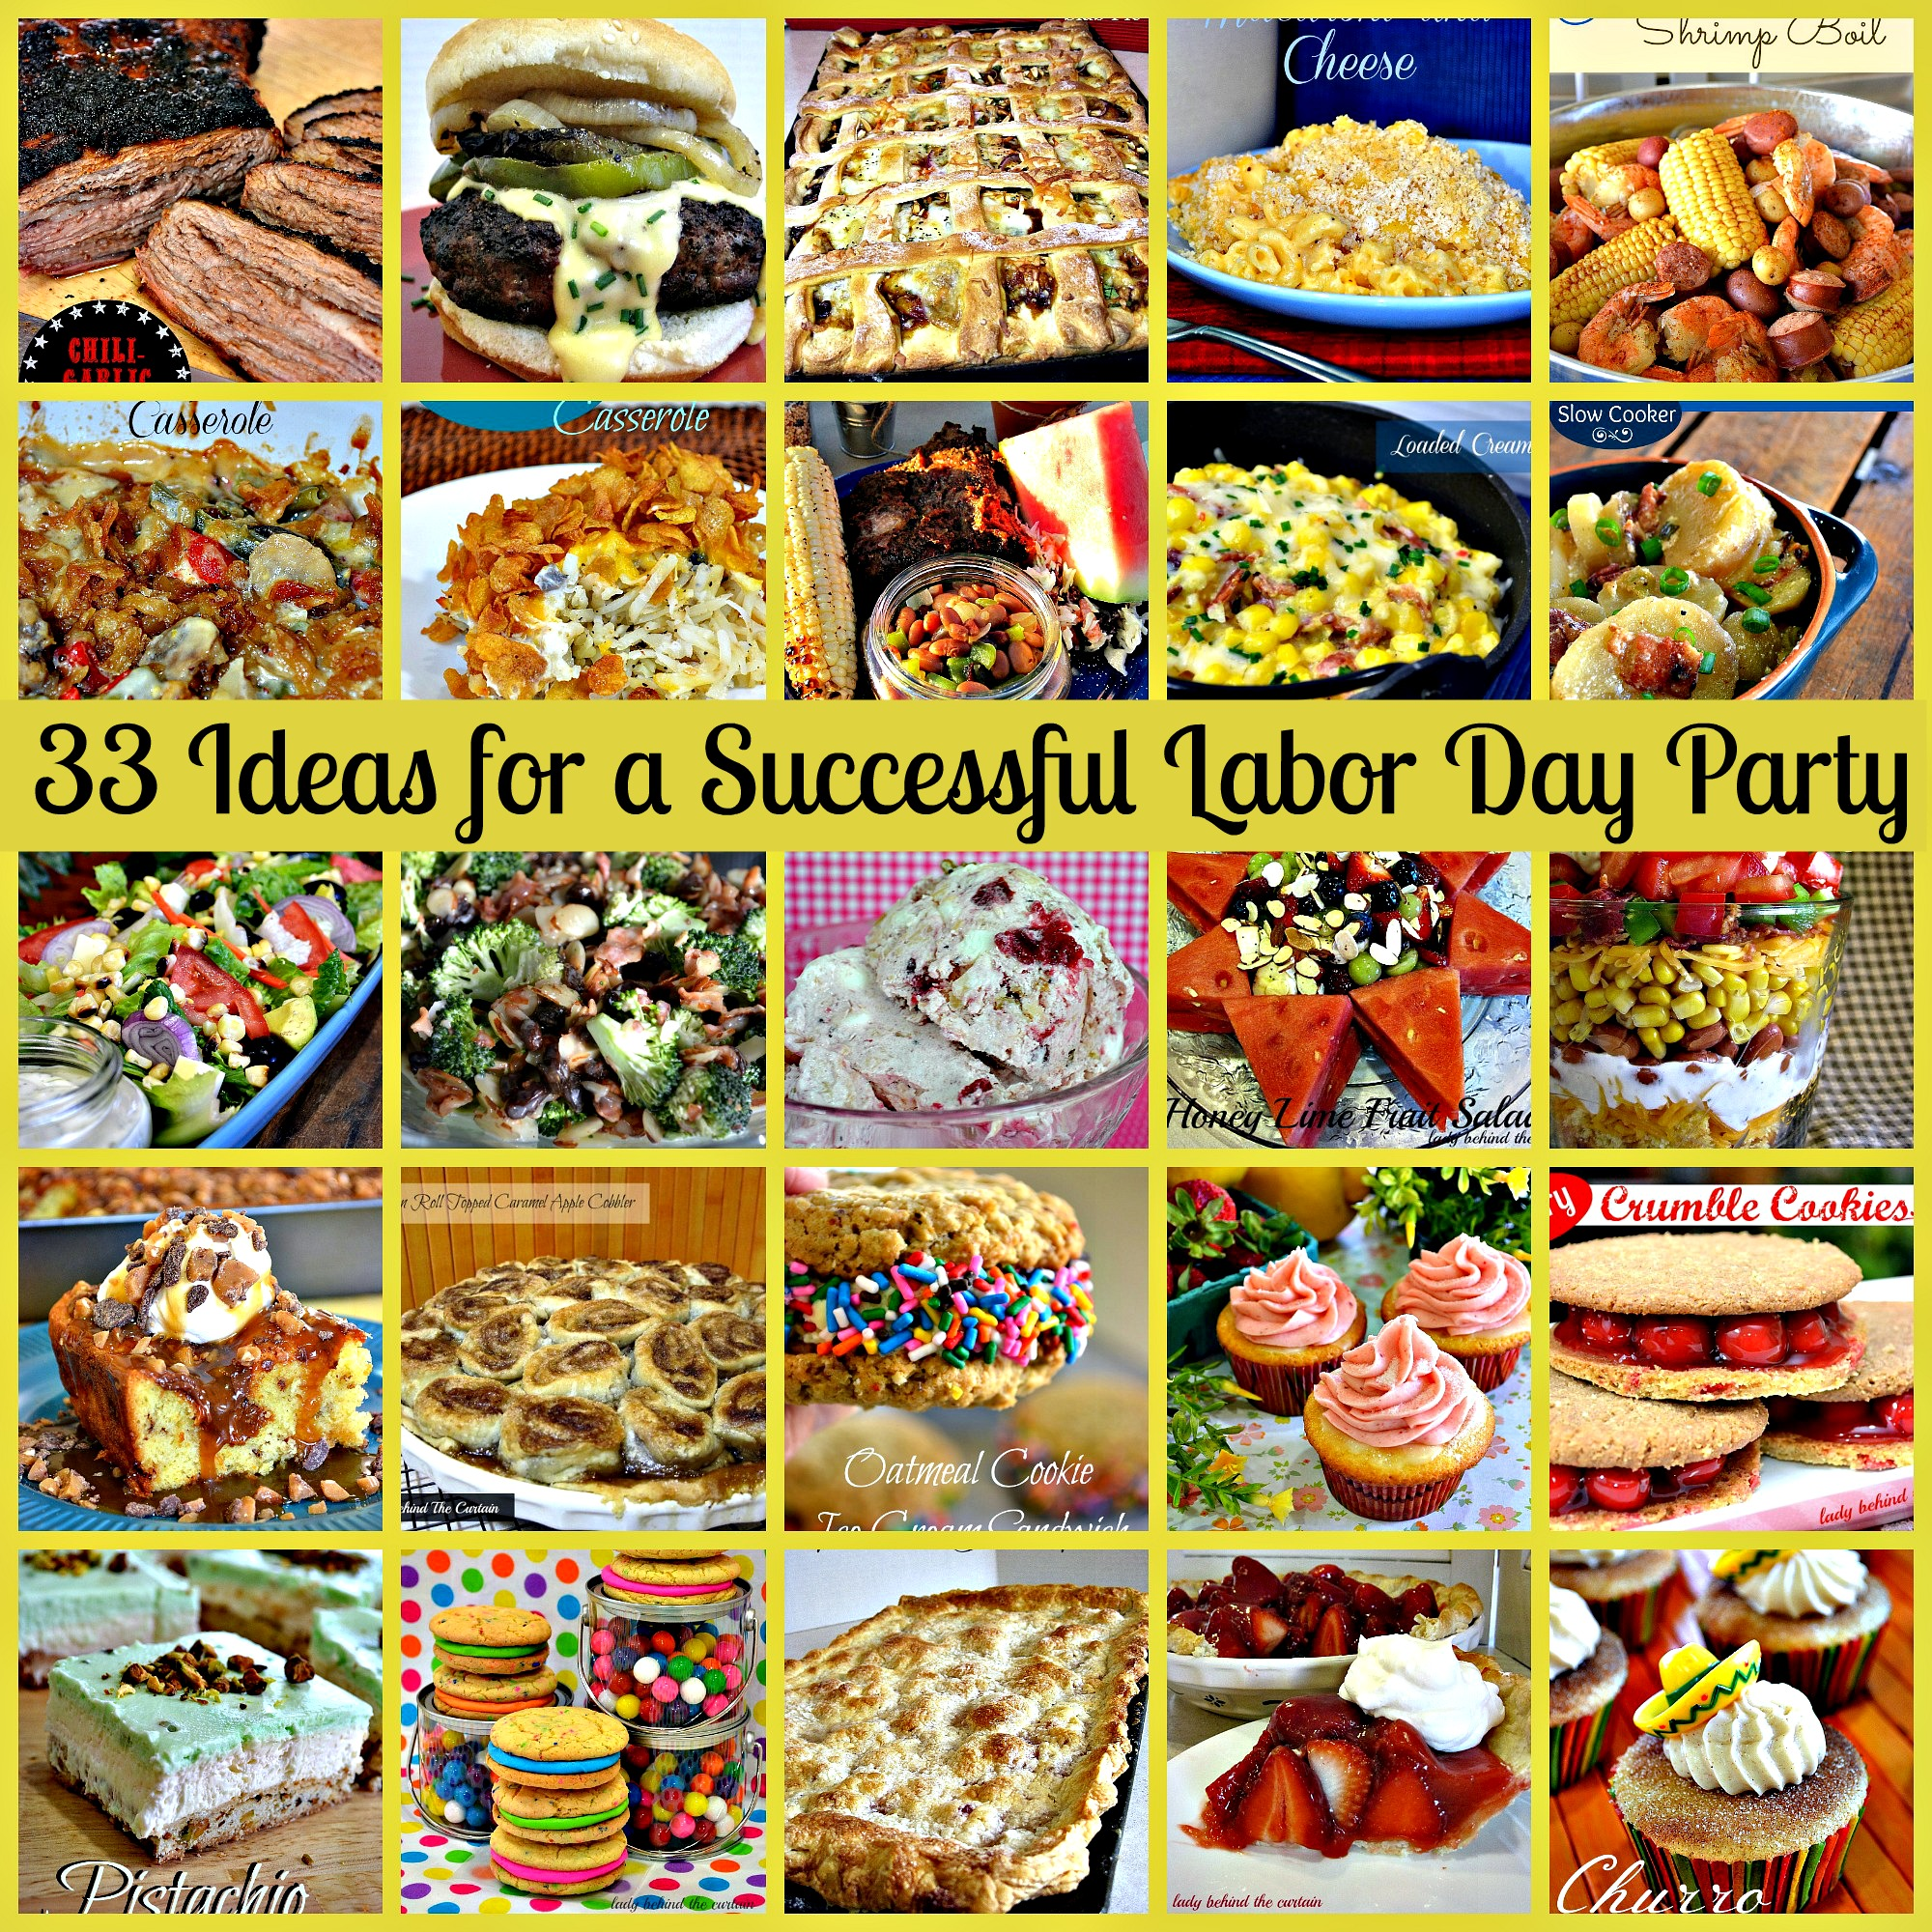 33-Ideas-for-a-Sucessful-Labor-Day-Party-Lady-Behind-The-Curtain